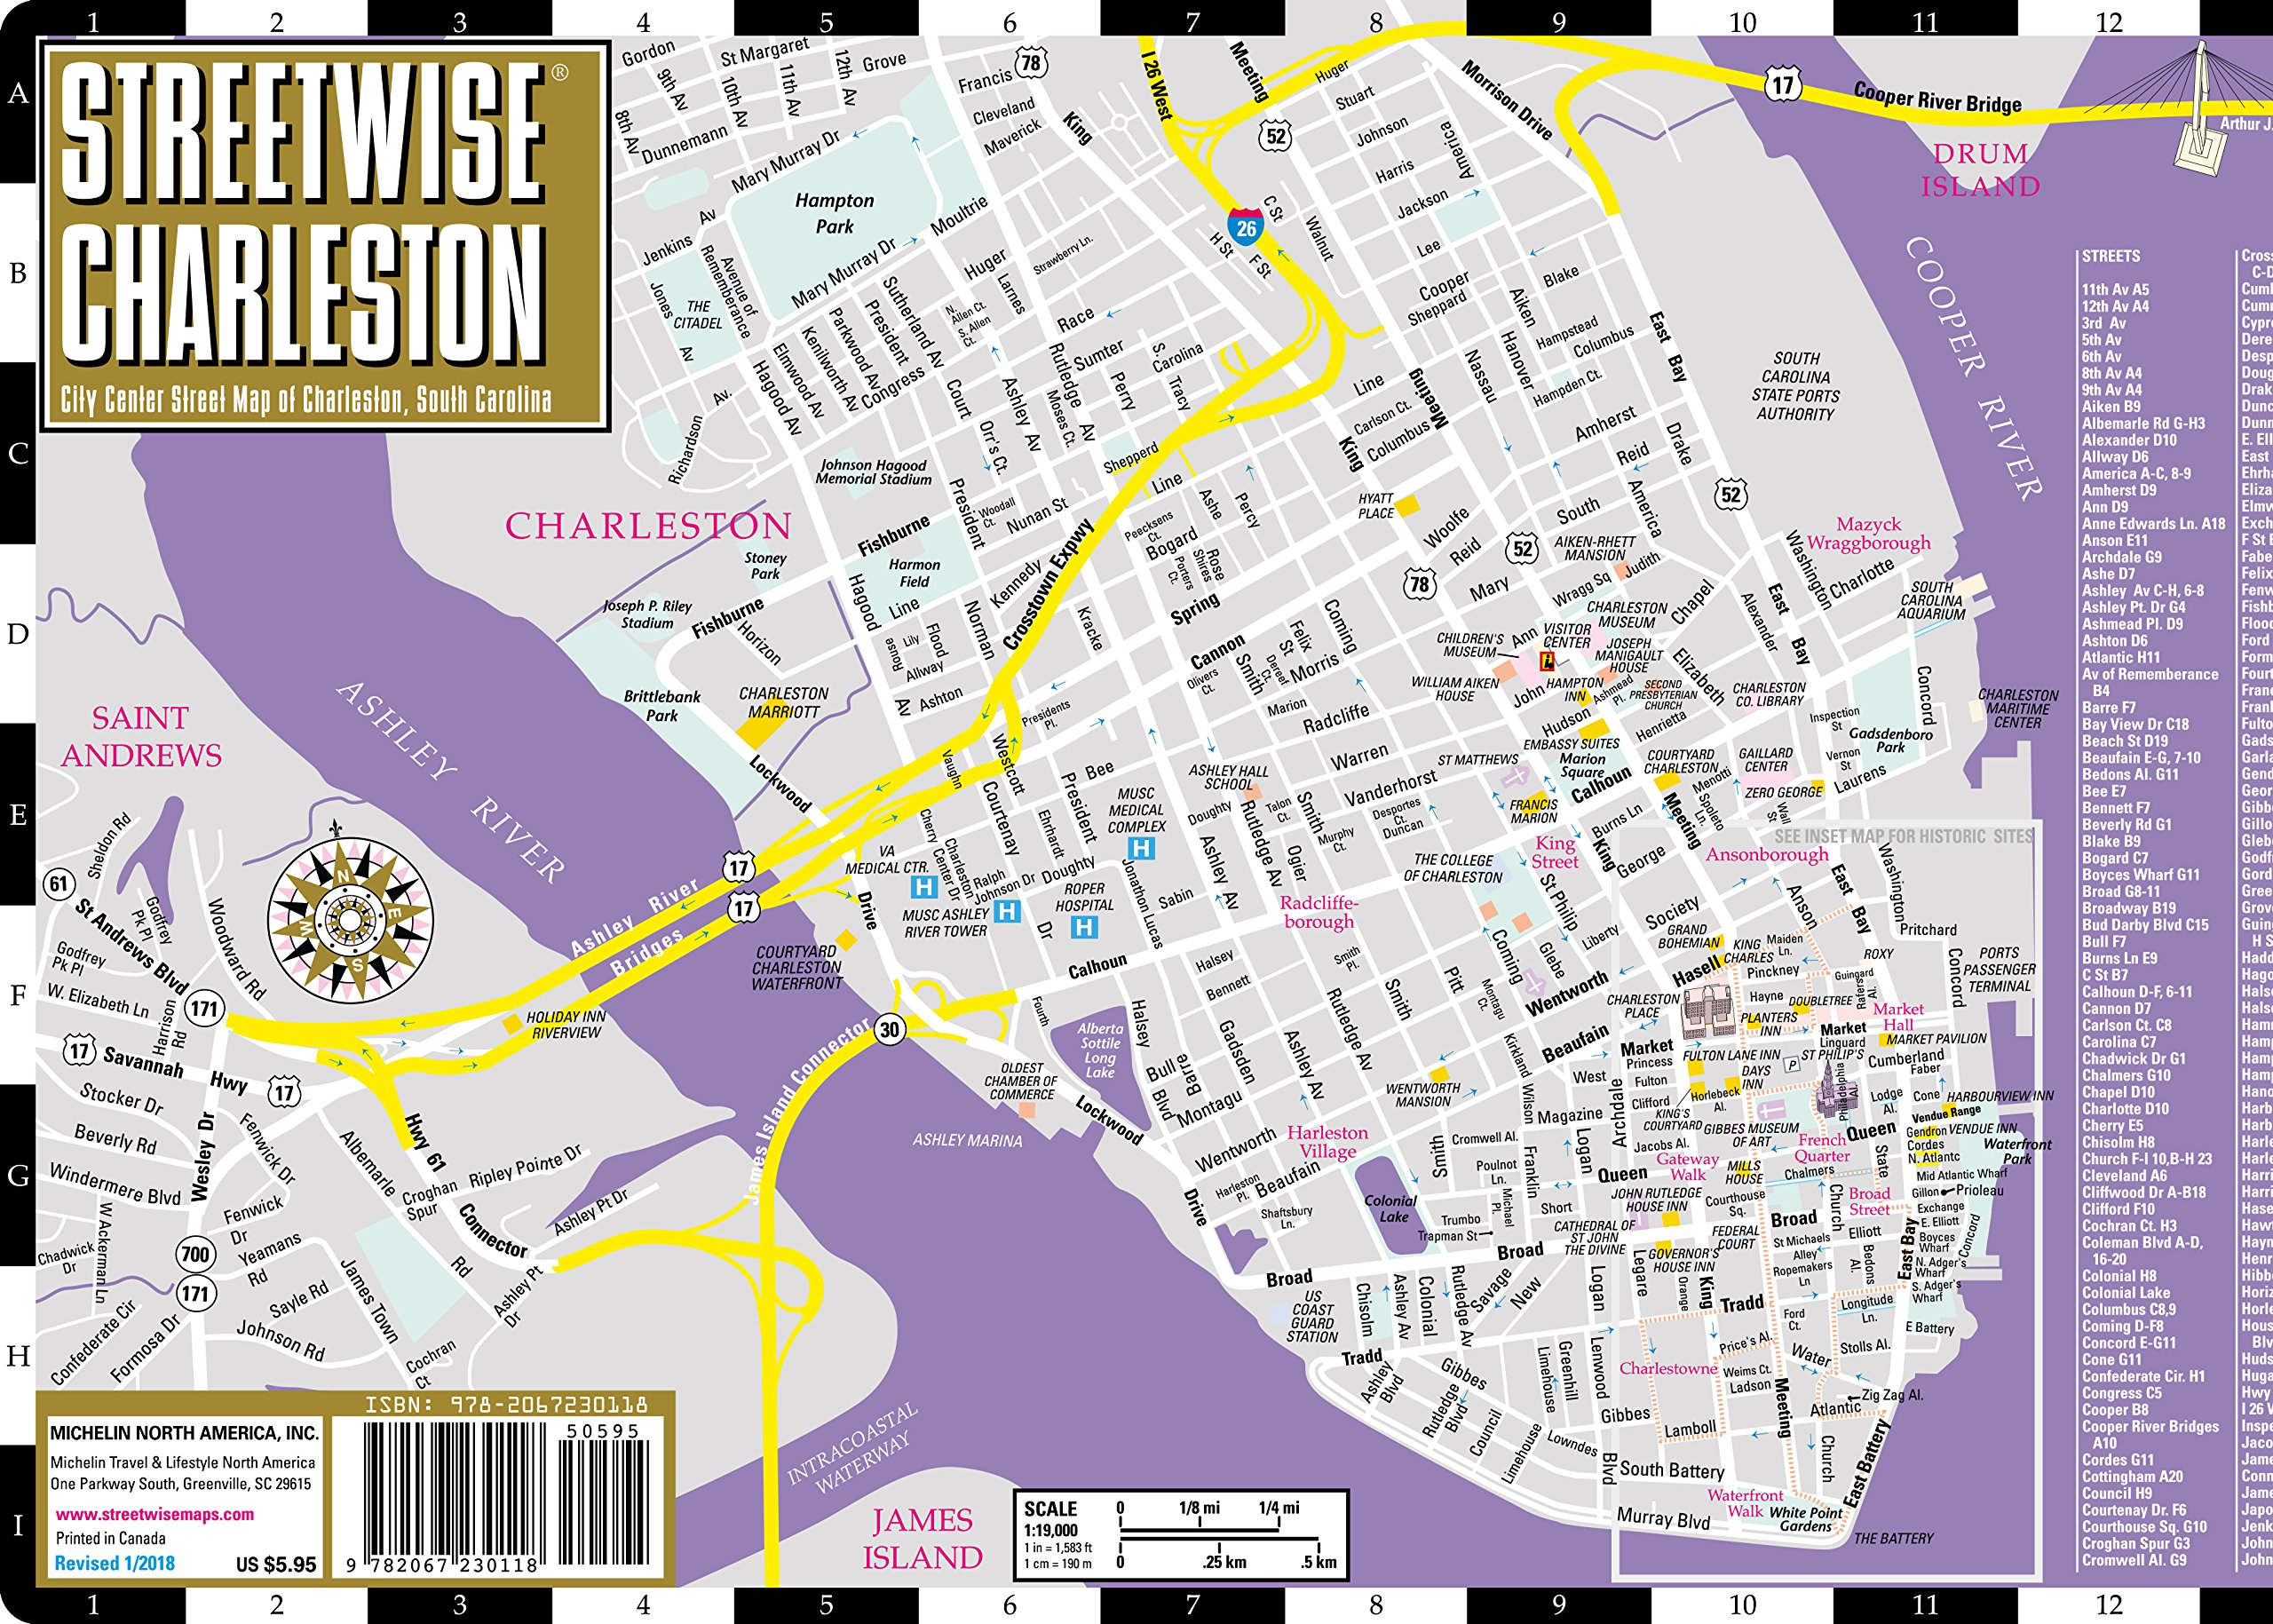 Charleston Historic District Map on